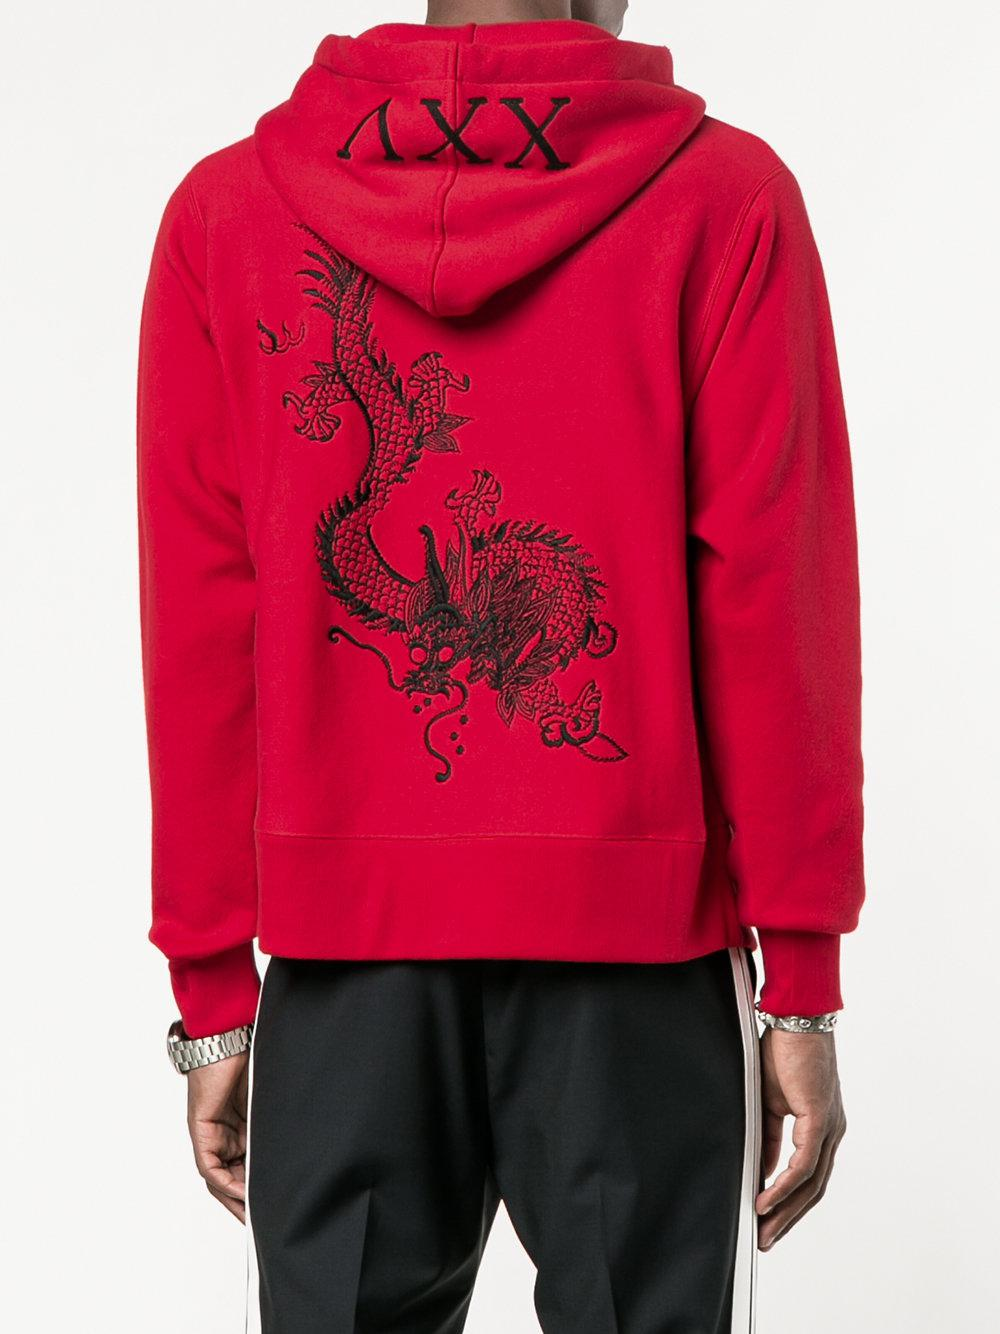 beeb627c0d7 Lyst - Gucci Embroidered Dragon Hoodie in Red for Men